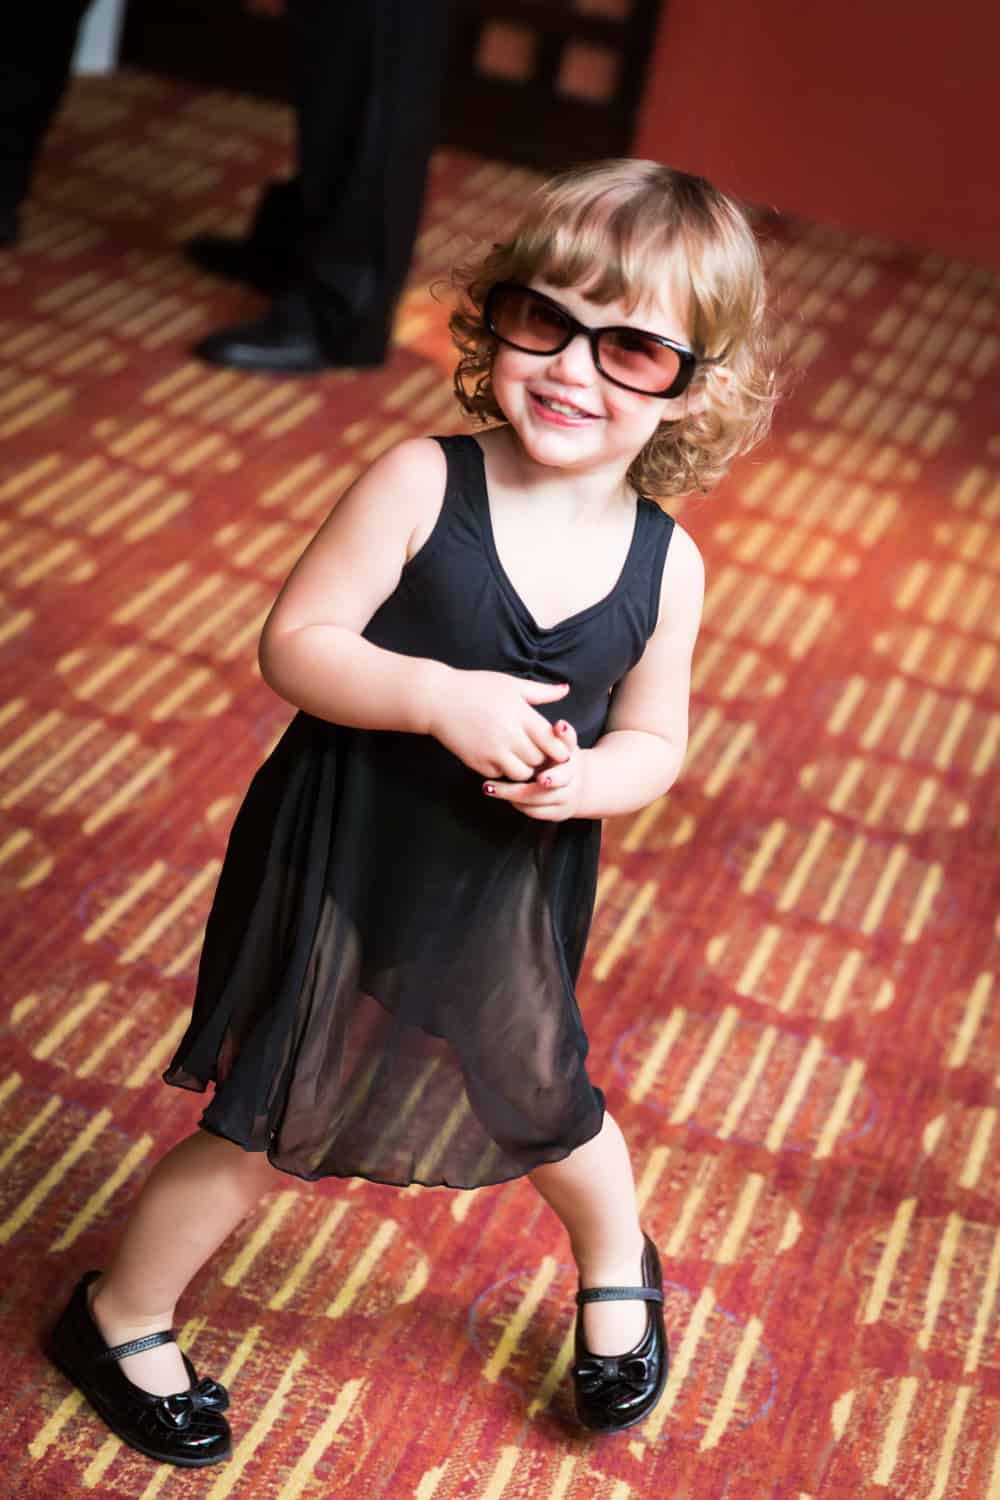 Little girl in black dress and sunglasses dancing